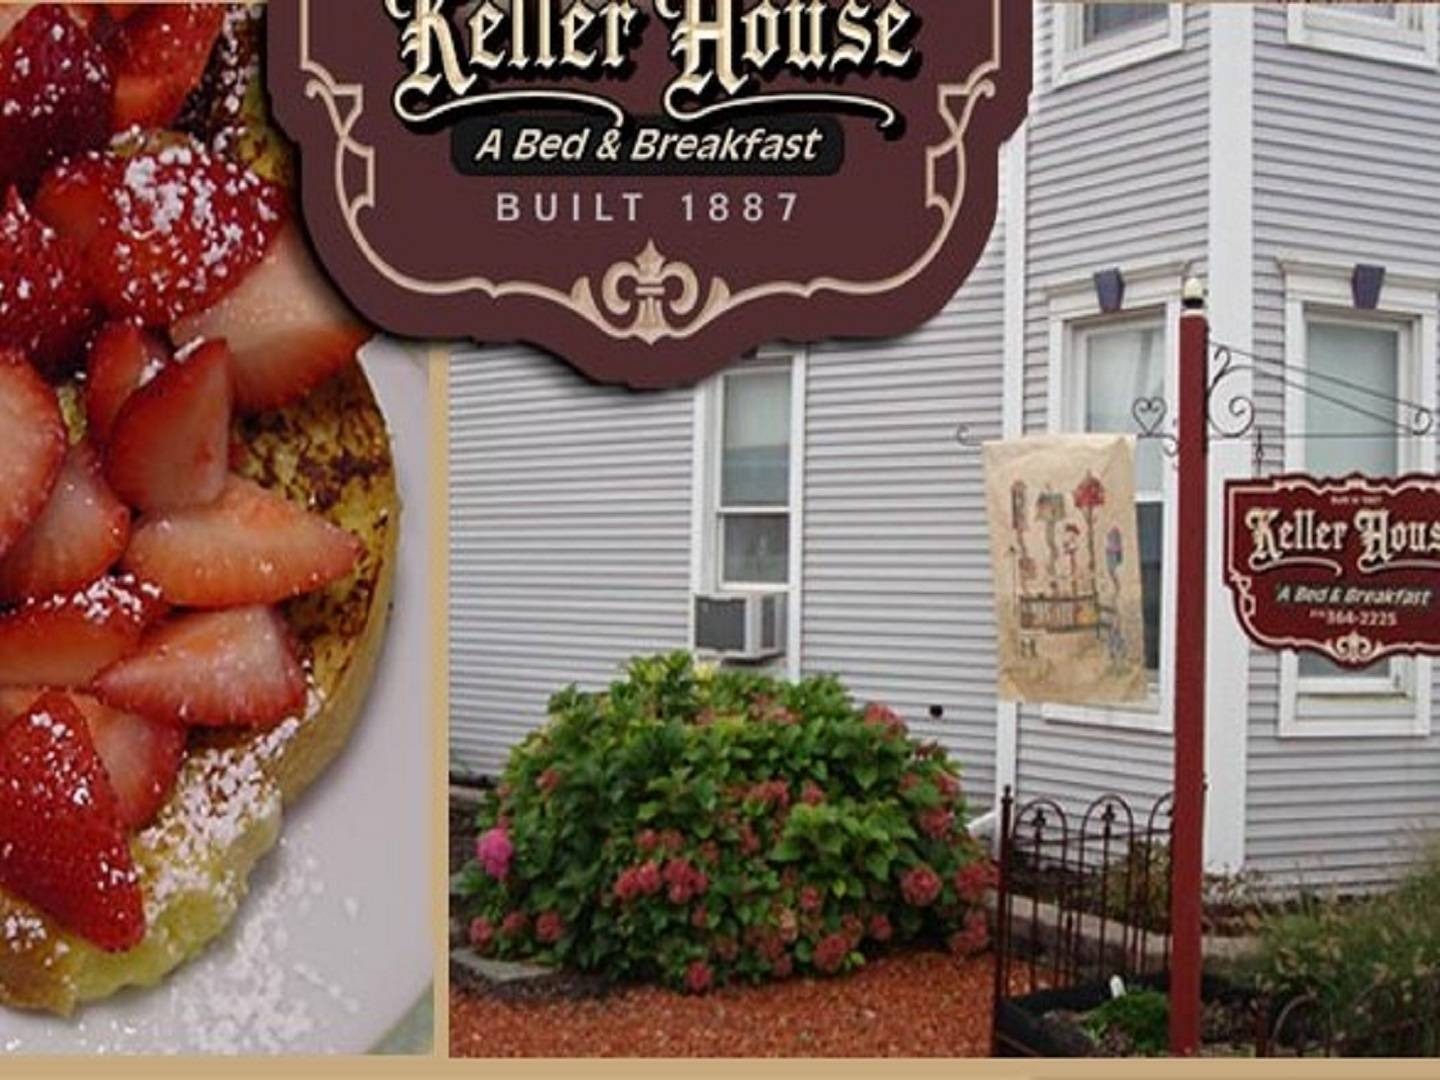 A close up of food in front of a building at Keller House Bed and Breakfast.